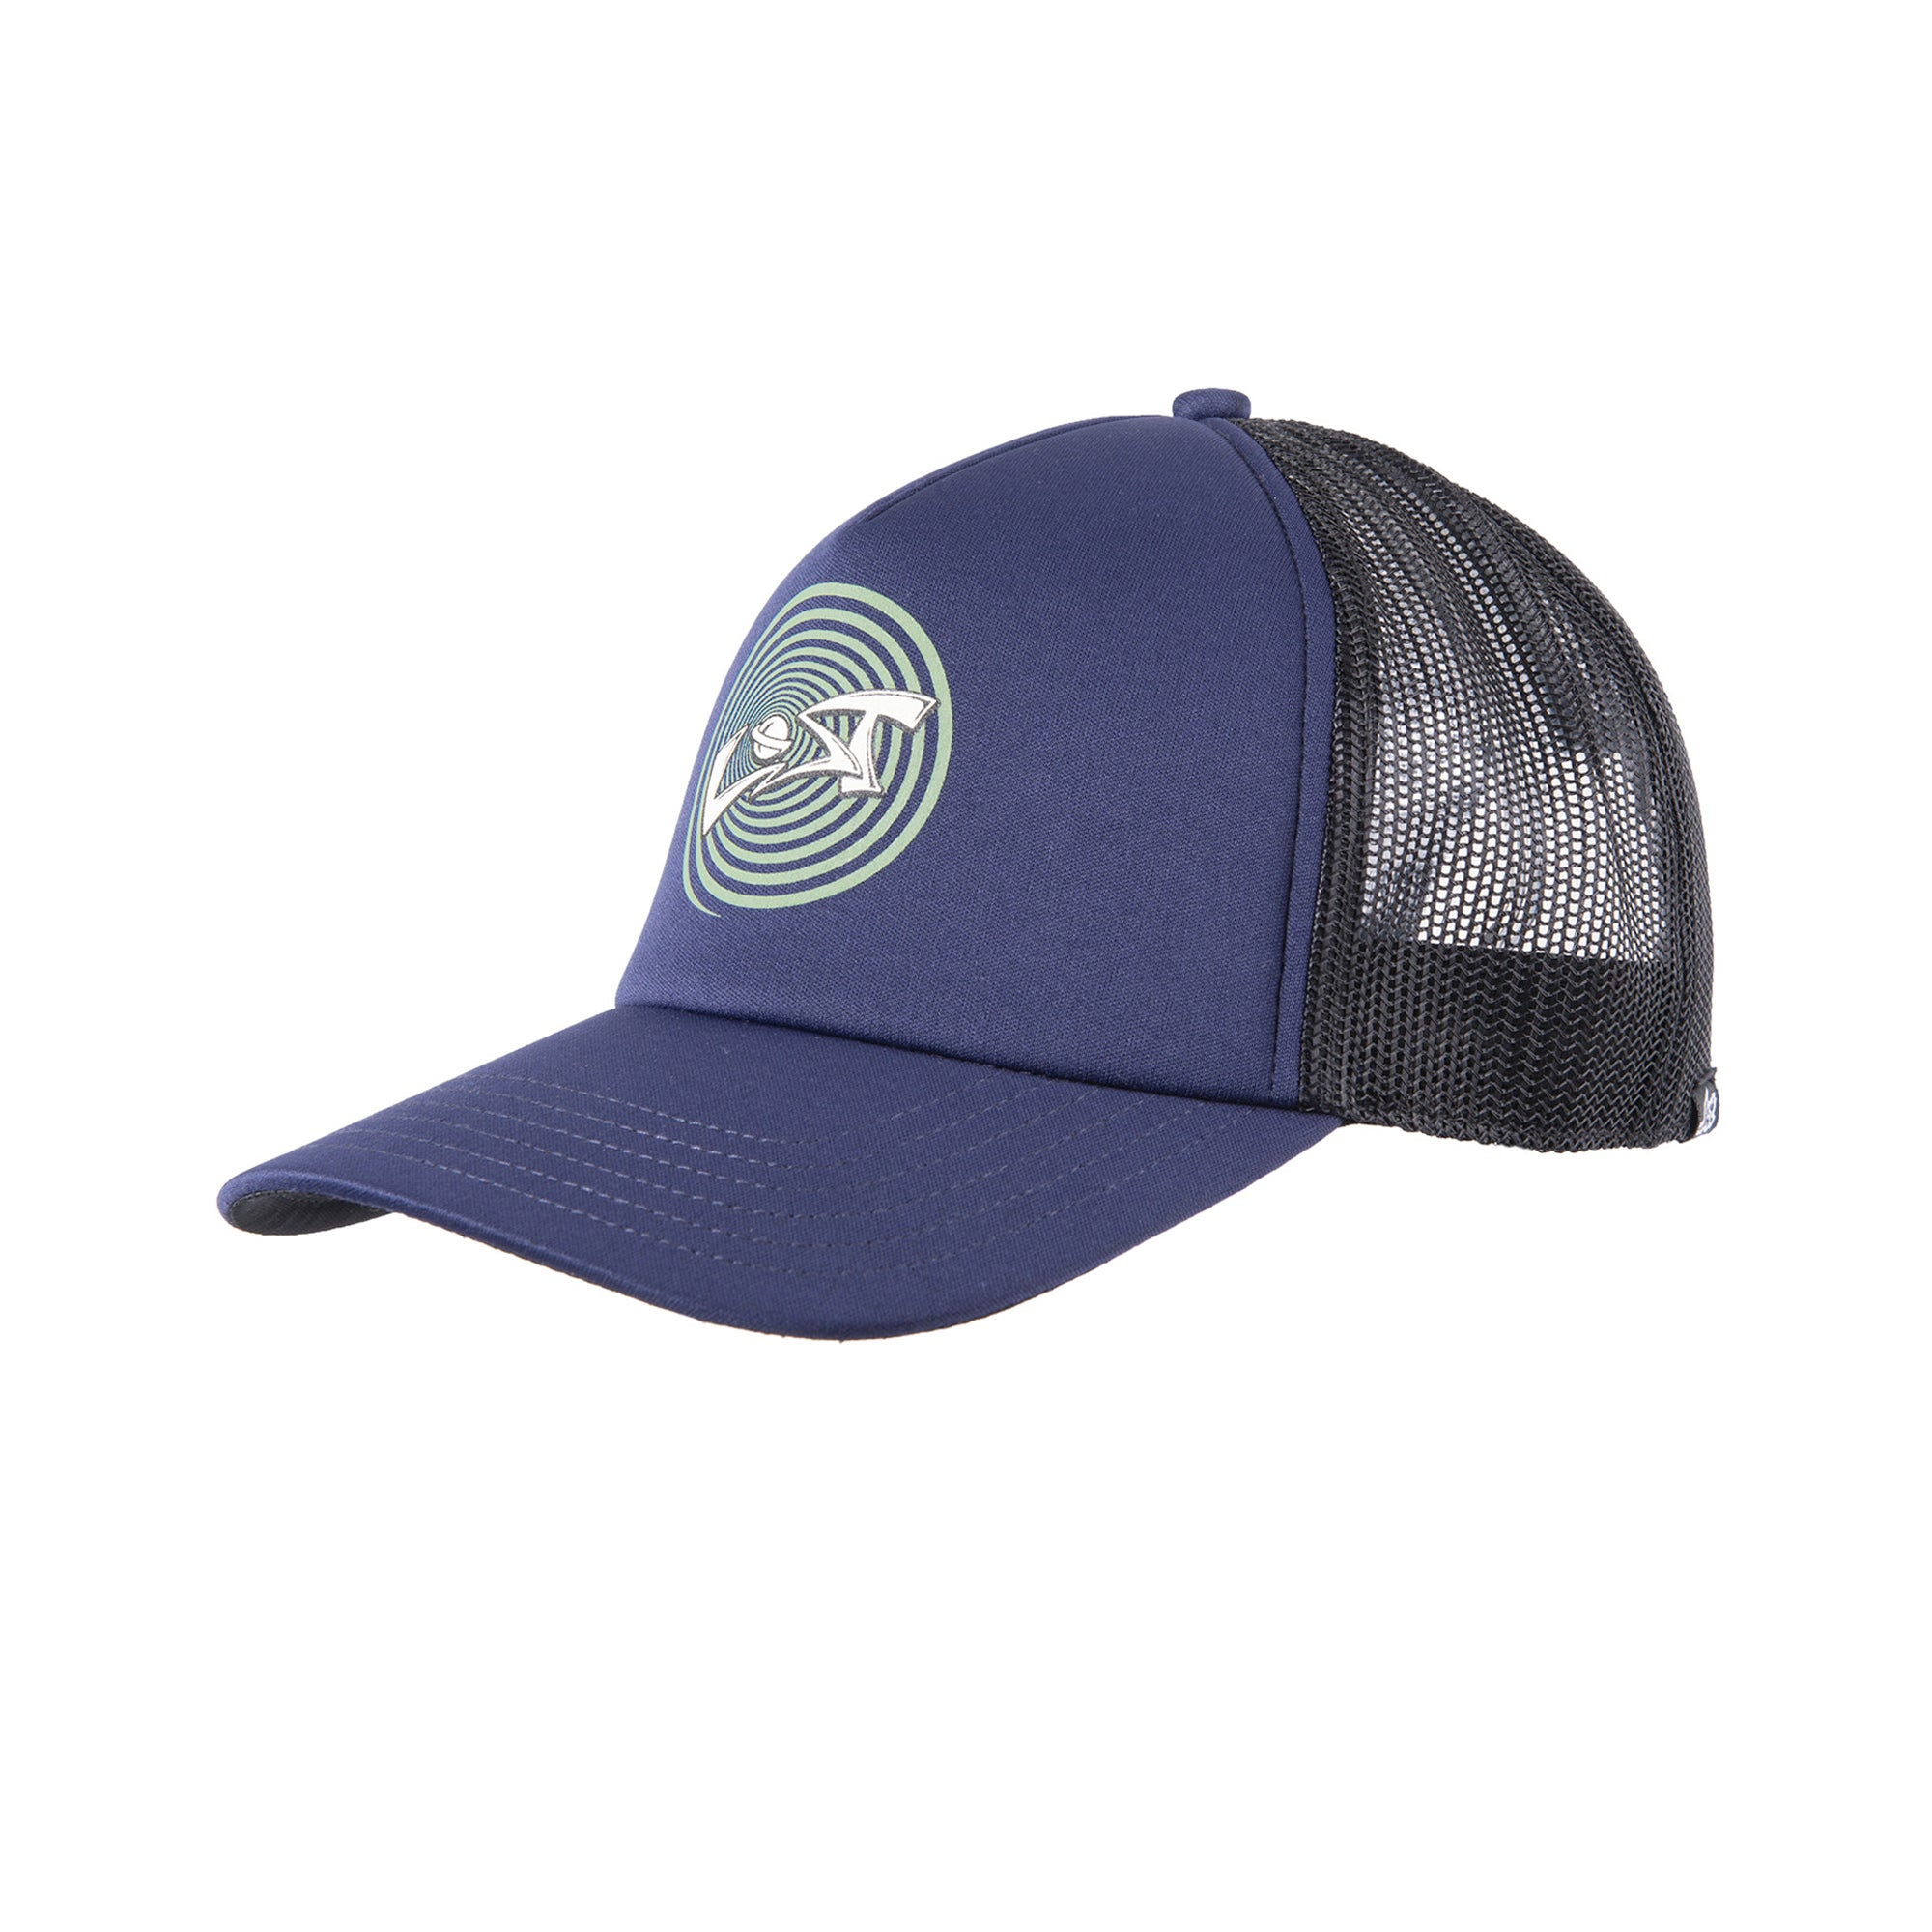 Lost Retro Men's Trucker Hat - Navy